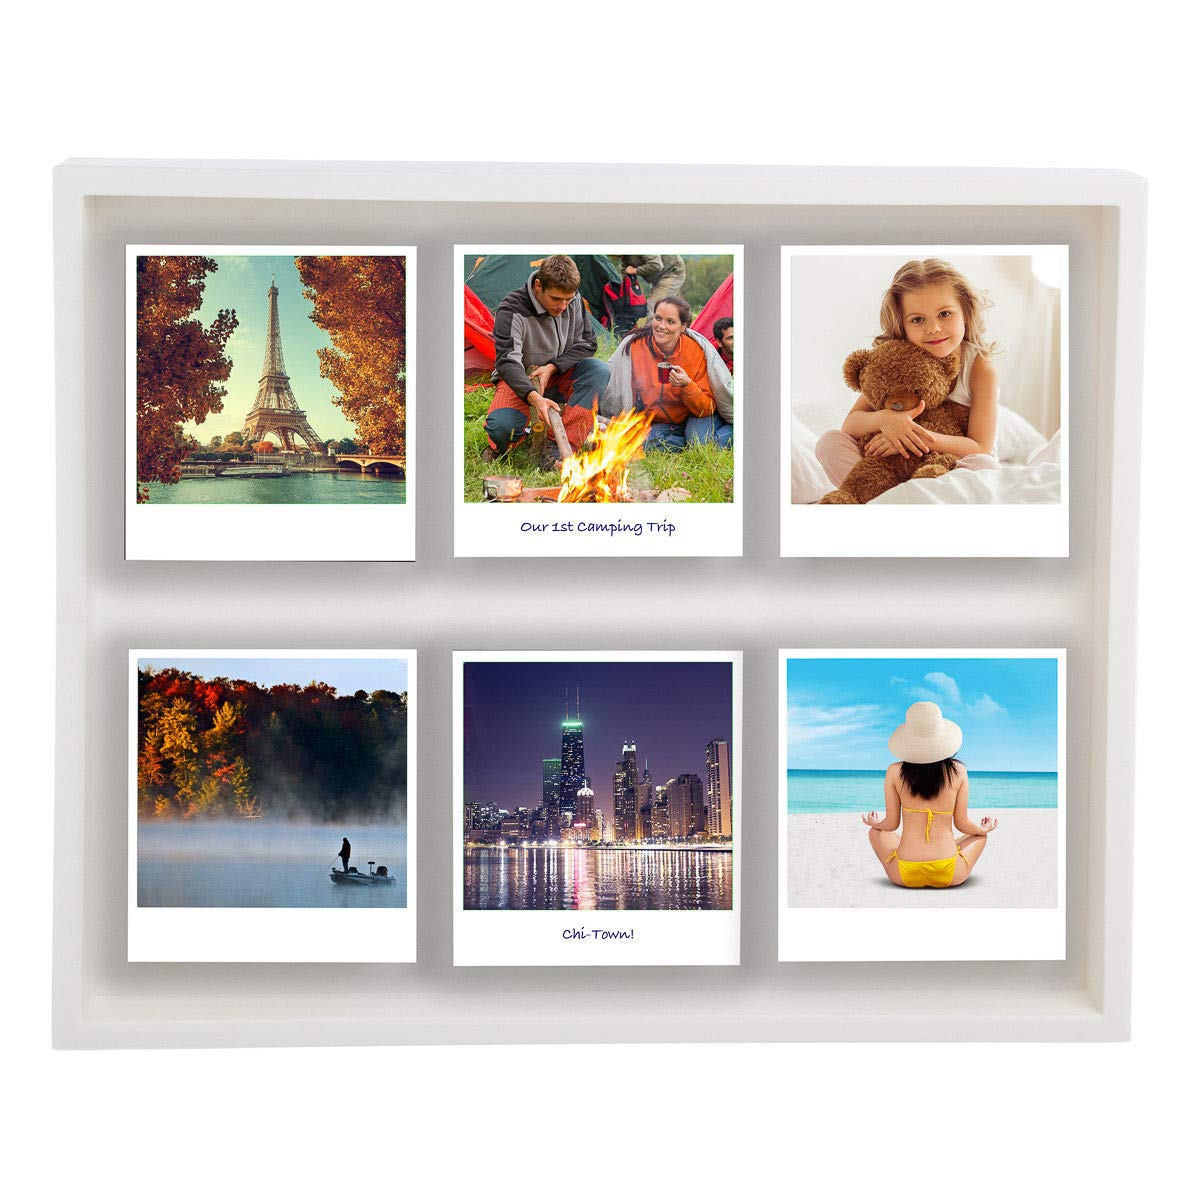 DN_DEA Wonderful Shadow Box Magnetic 12 x 10'' Polaroid Photo Frame Holds 6 Pictures Photographs Color White